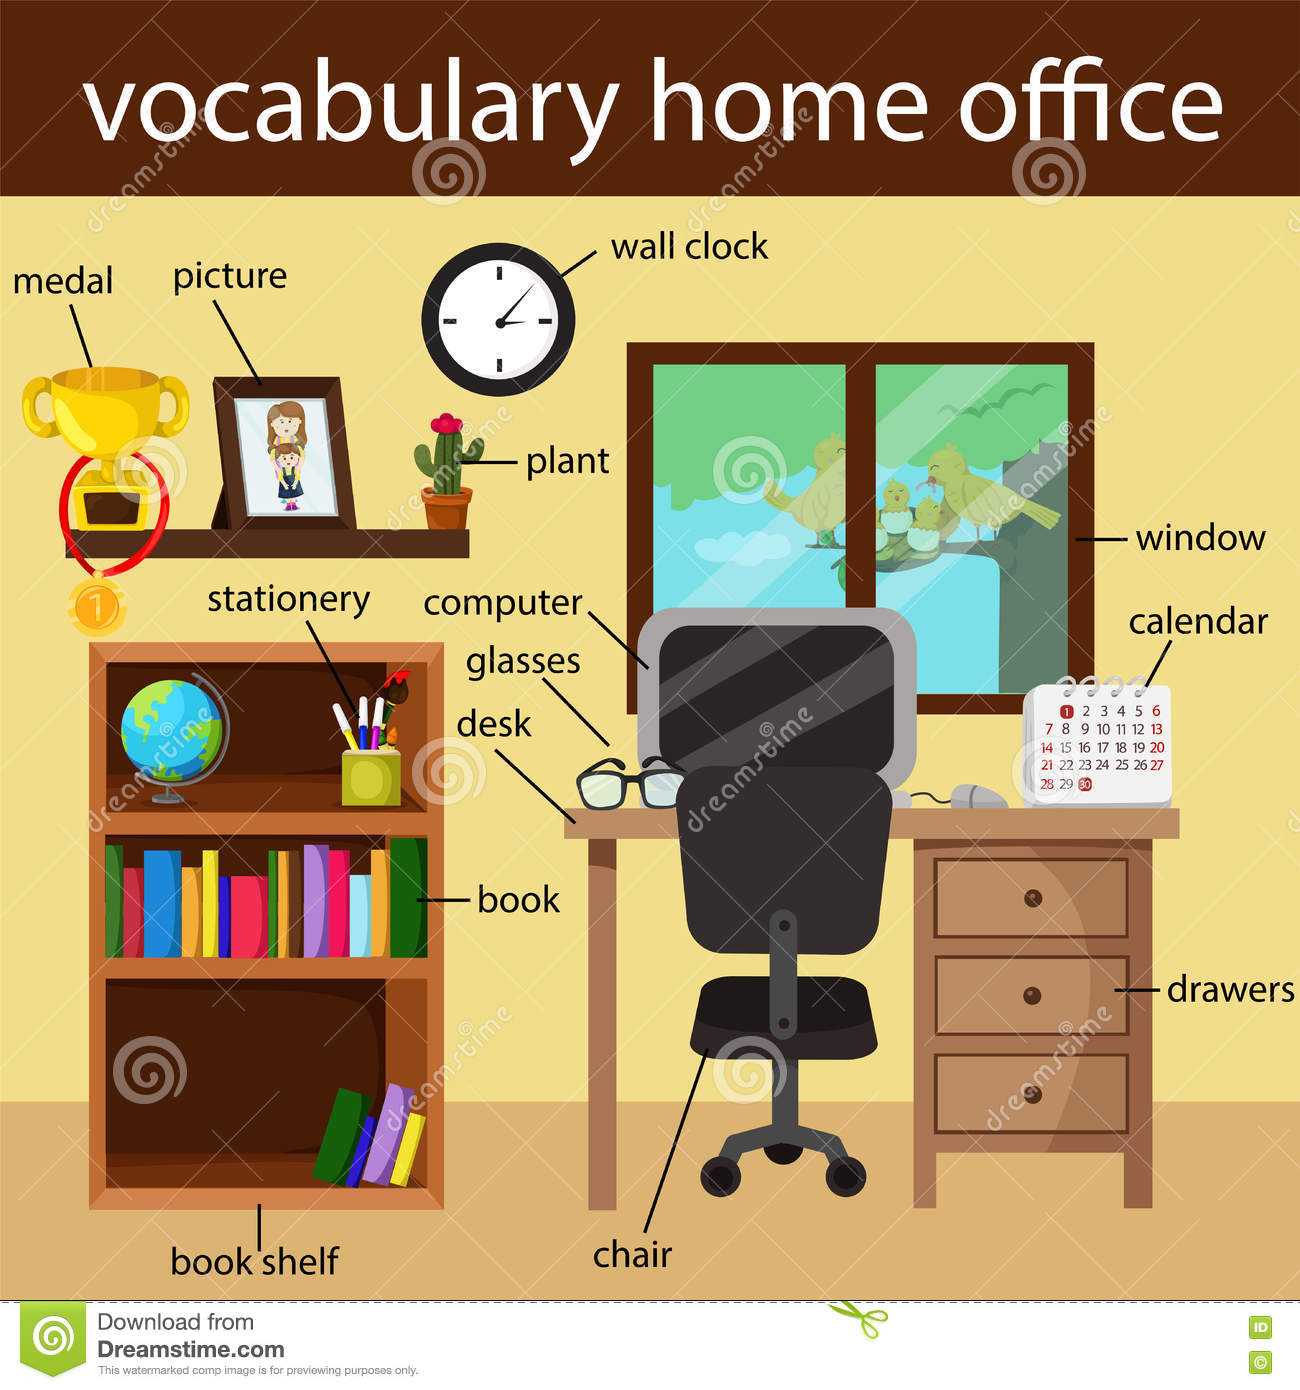 Illustrator Of Vocabulary Home Office Stock Vector